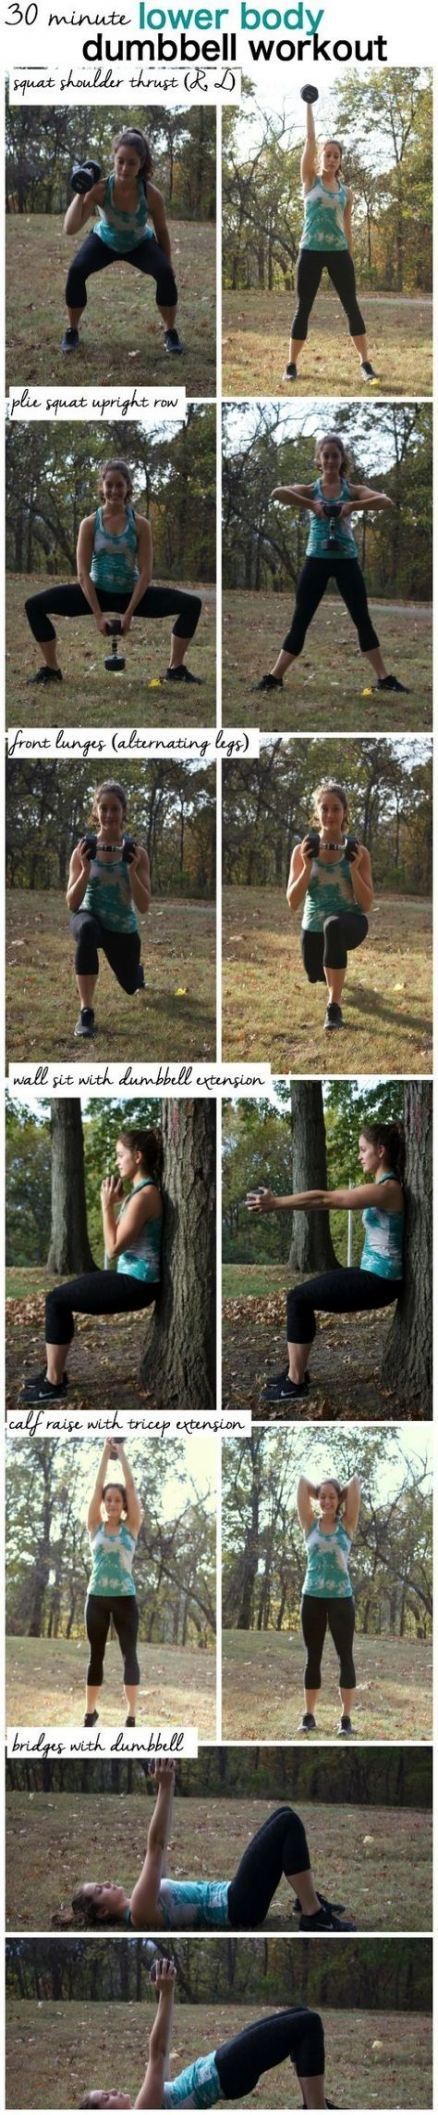 New fitness motivation squats awesome 60 ideas #motivation #fitness